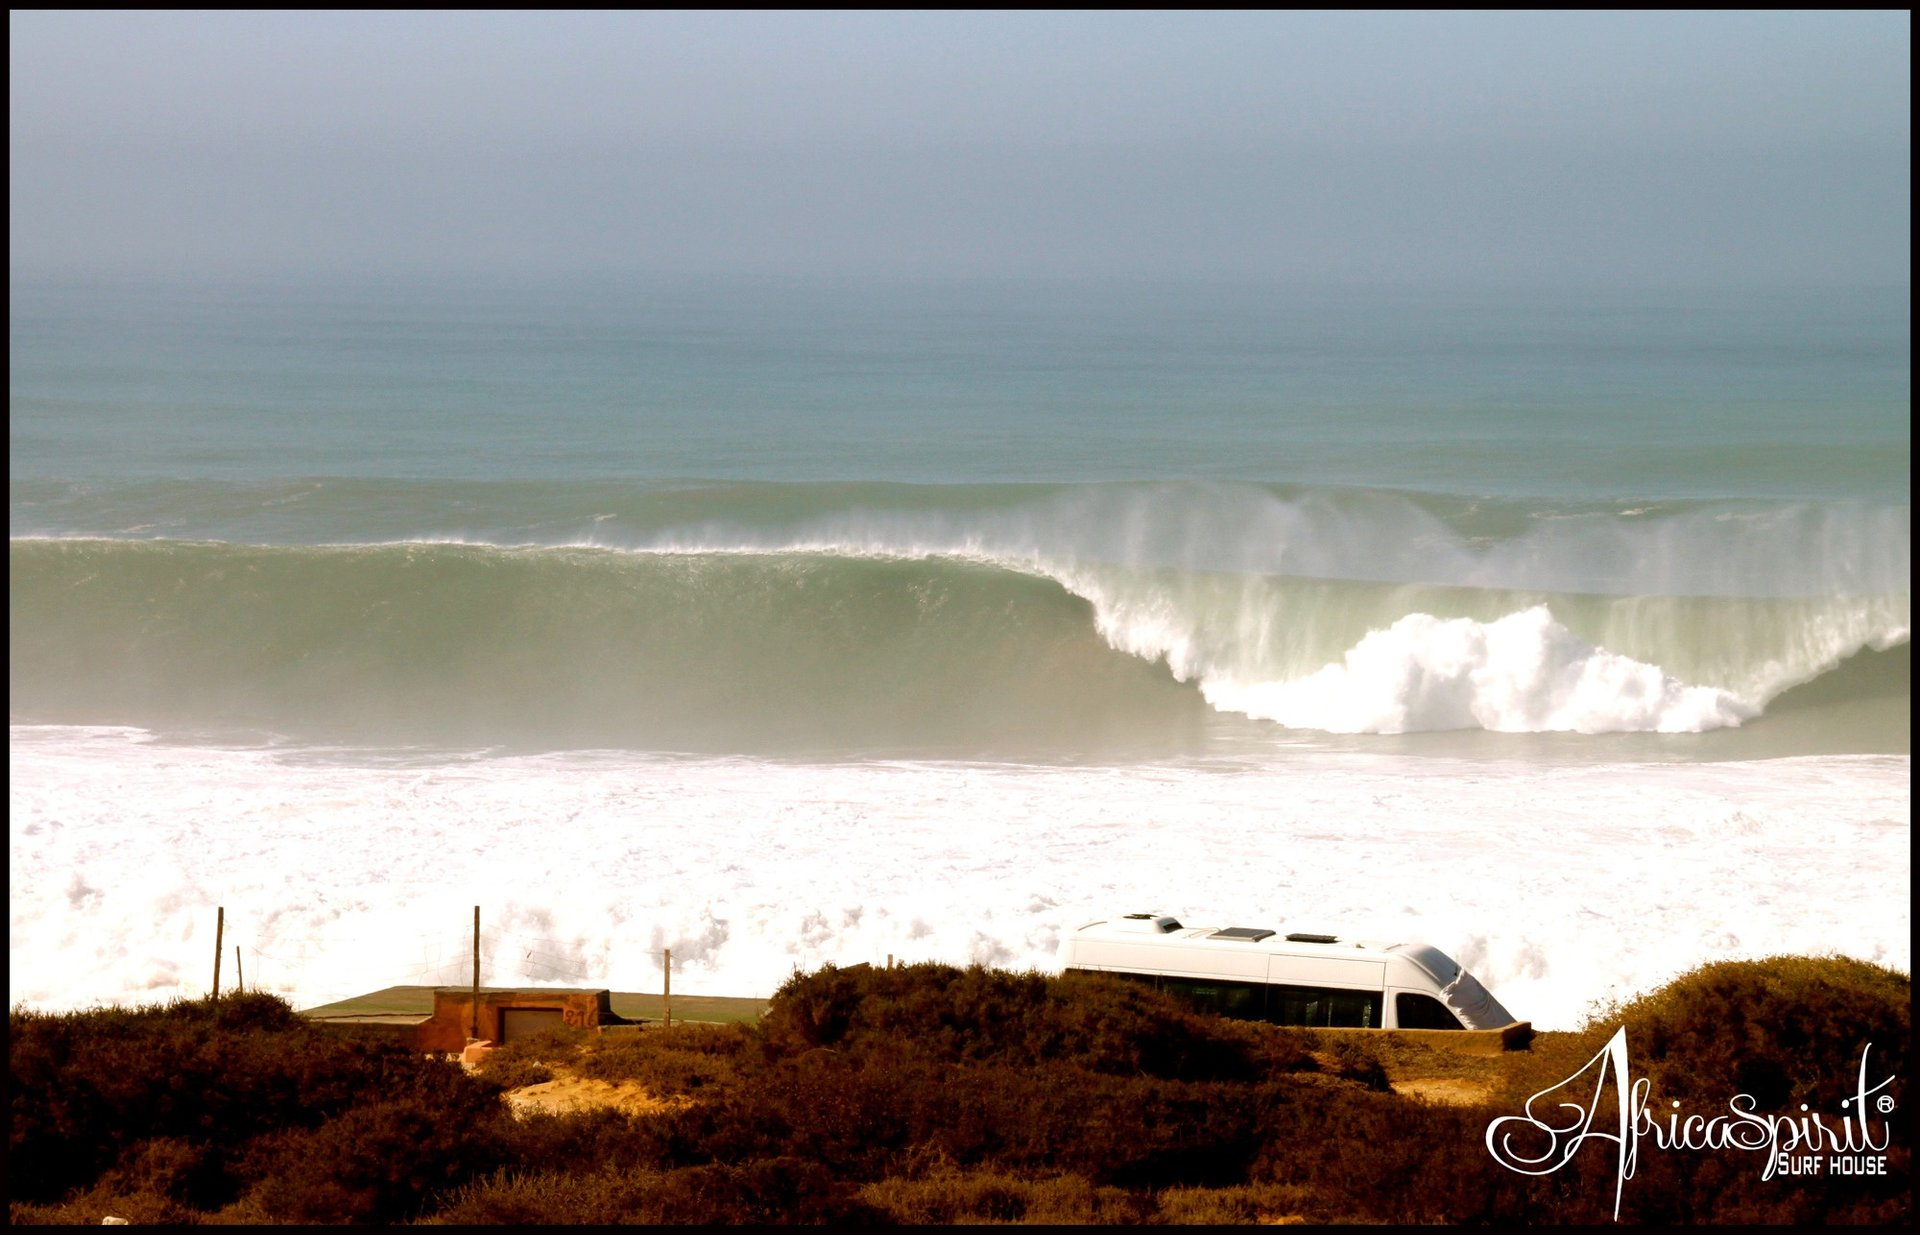 africaspirit's photo of Taghazout